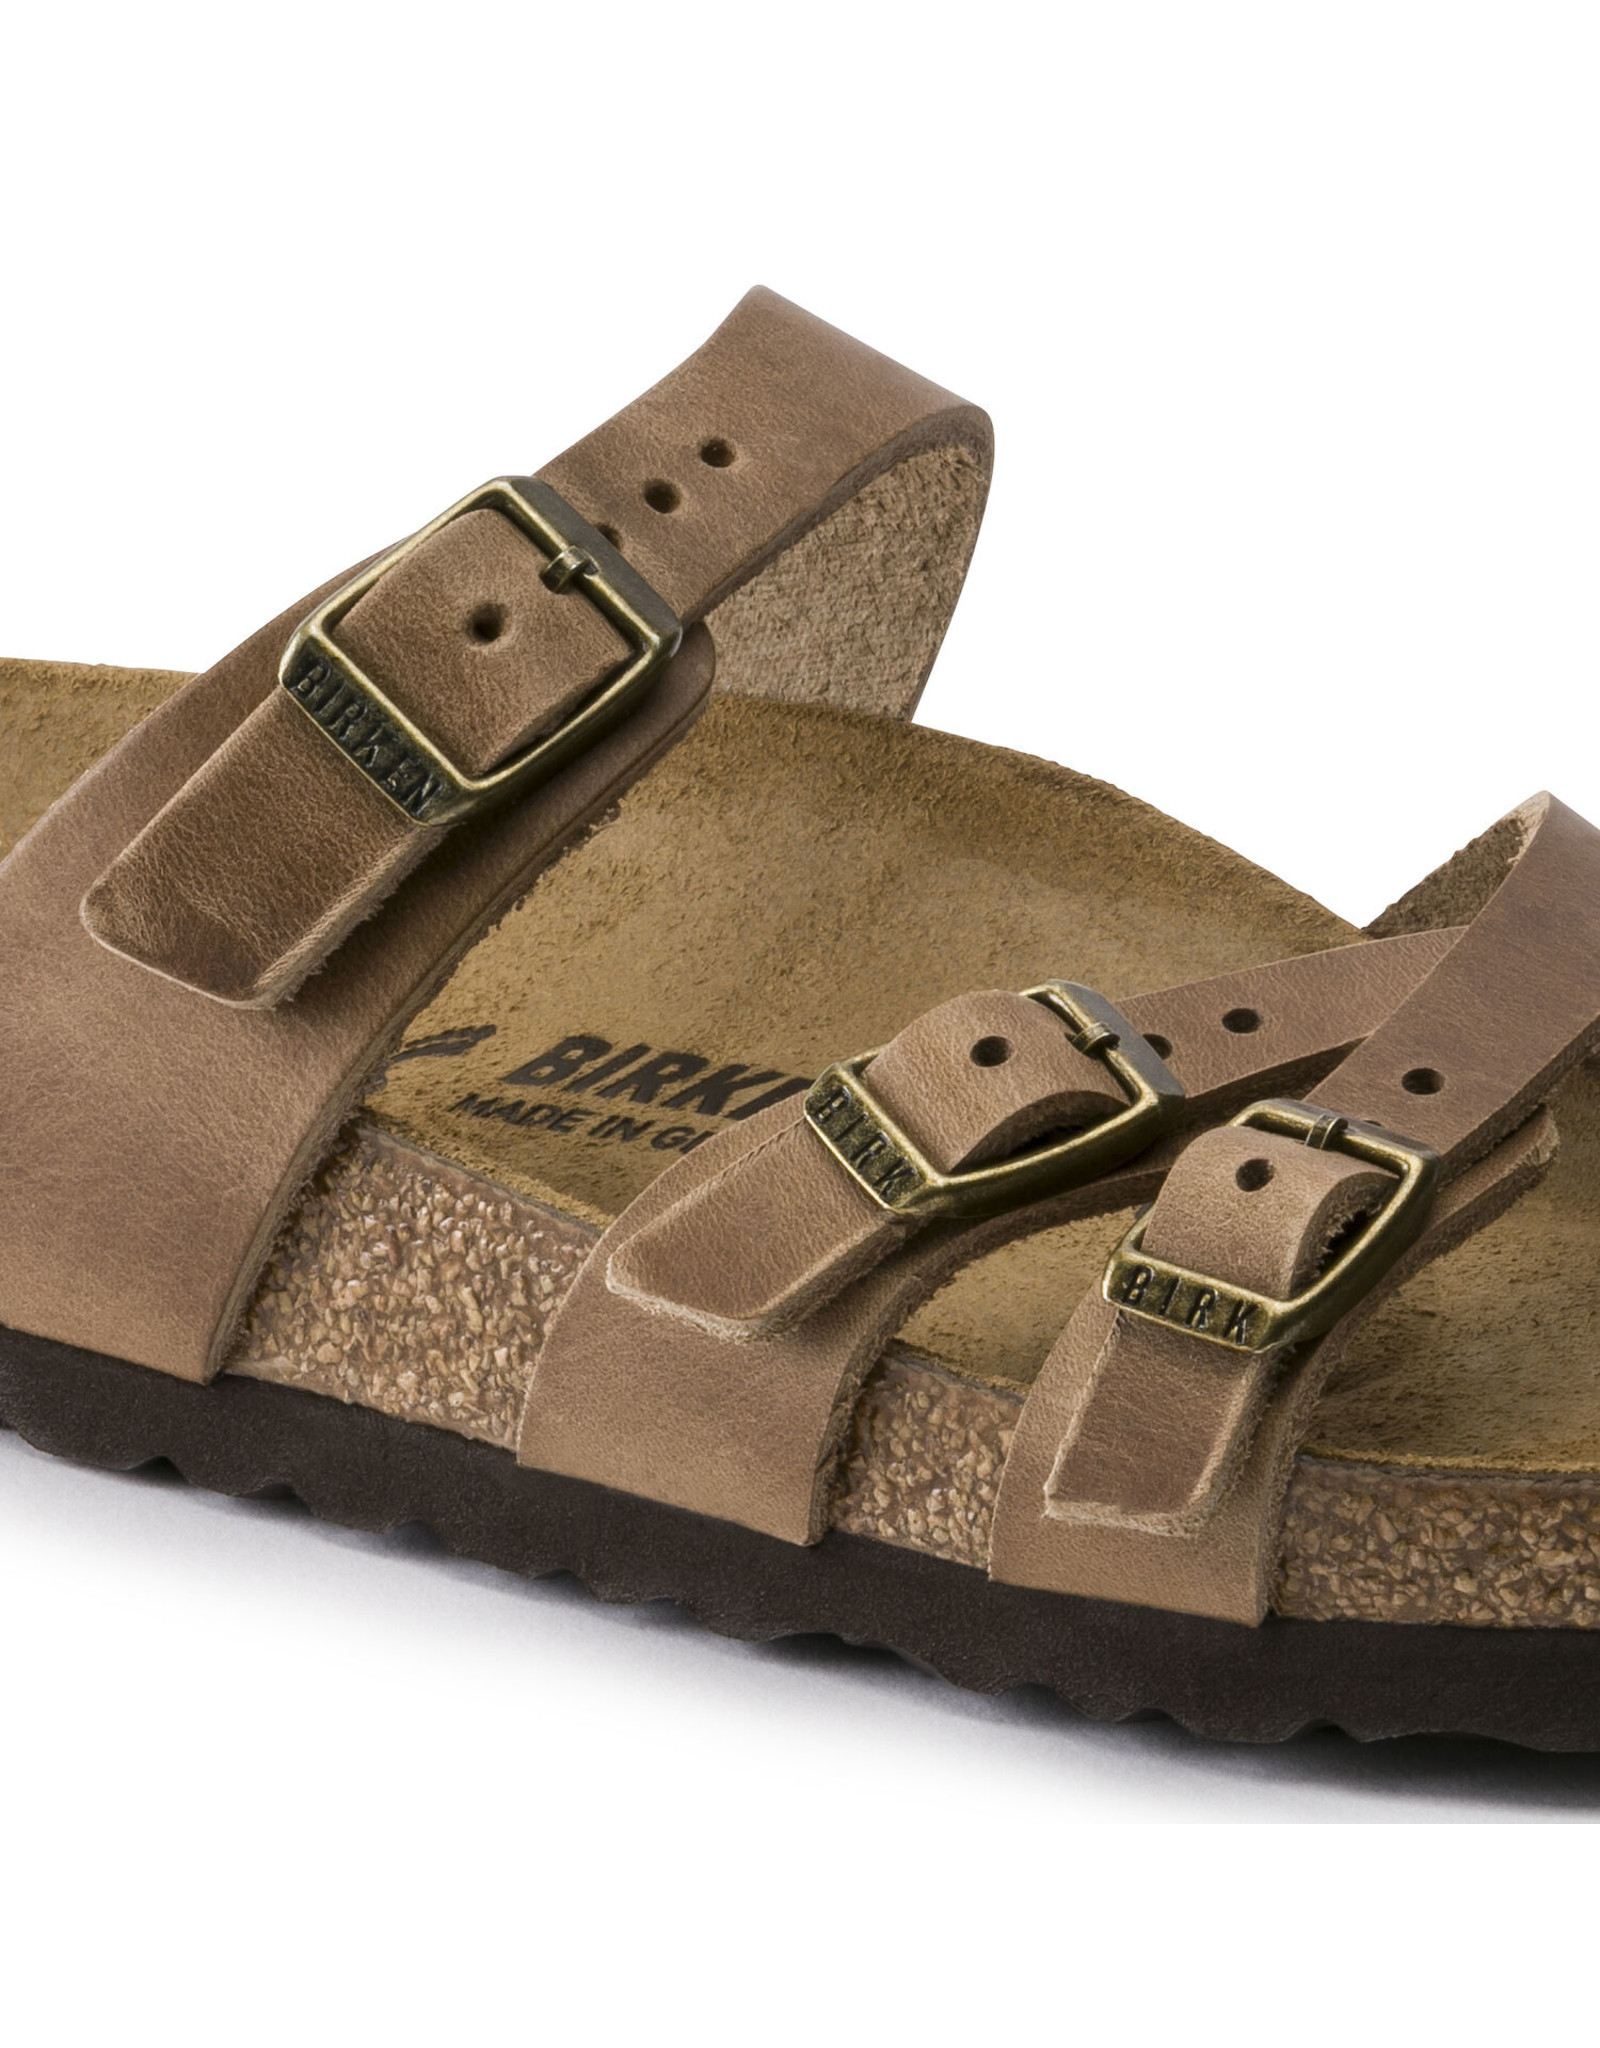 BIRKENSTOCK FRANCA OILED LEATHER-TOBACCO BROWN